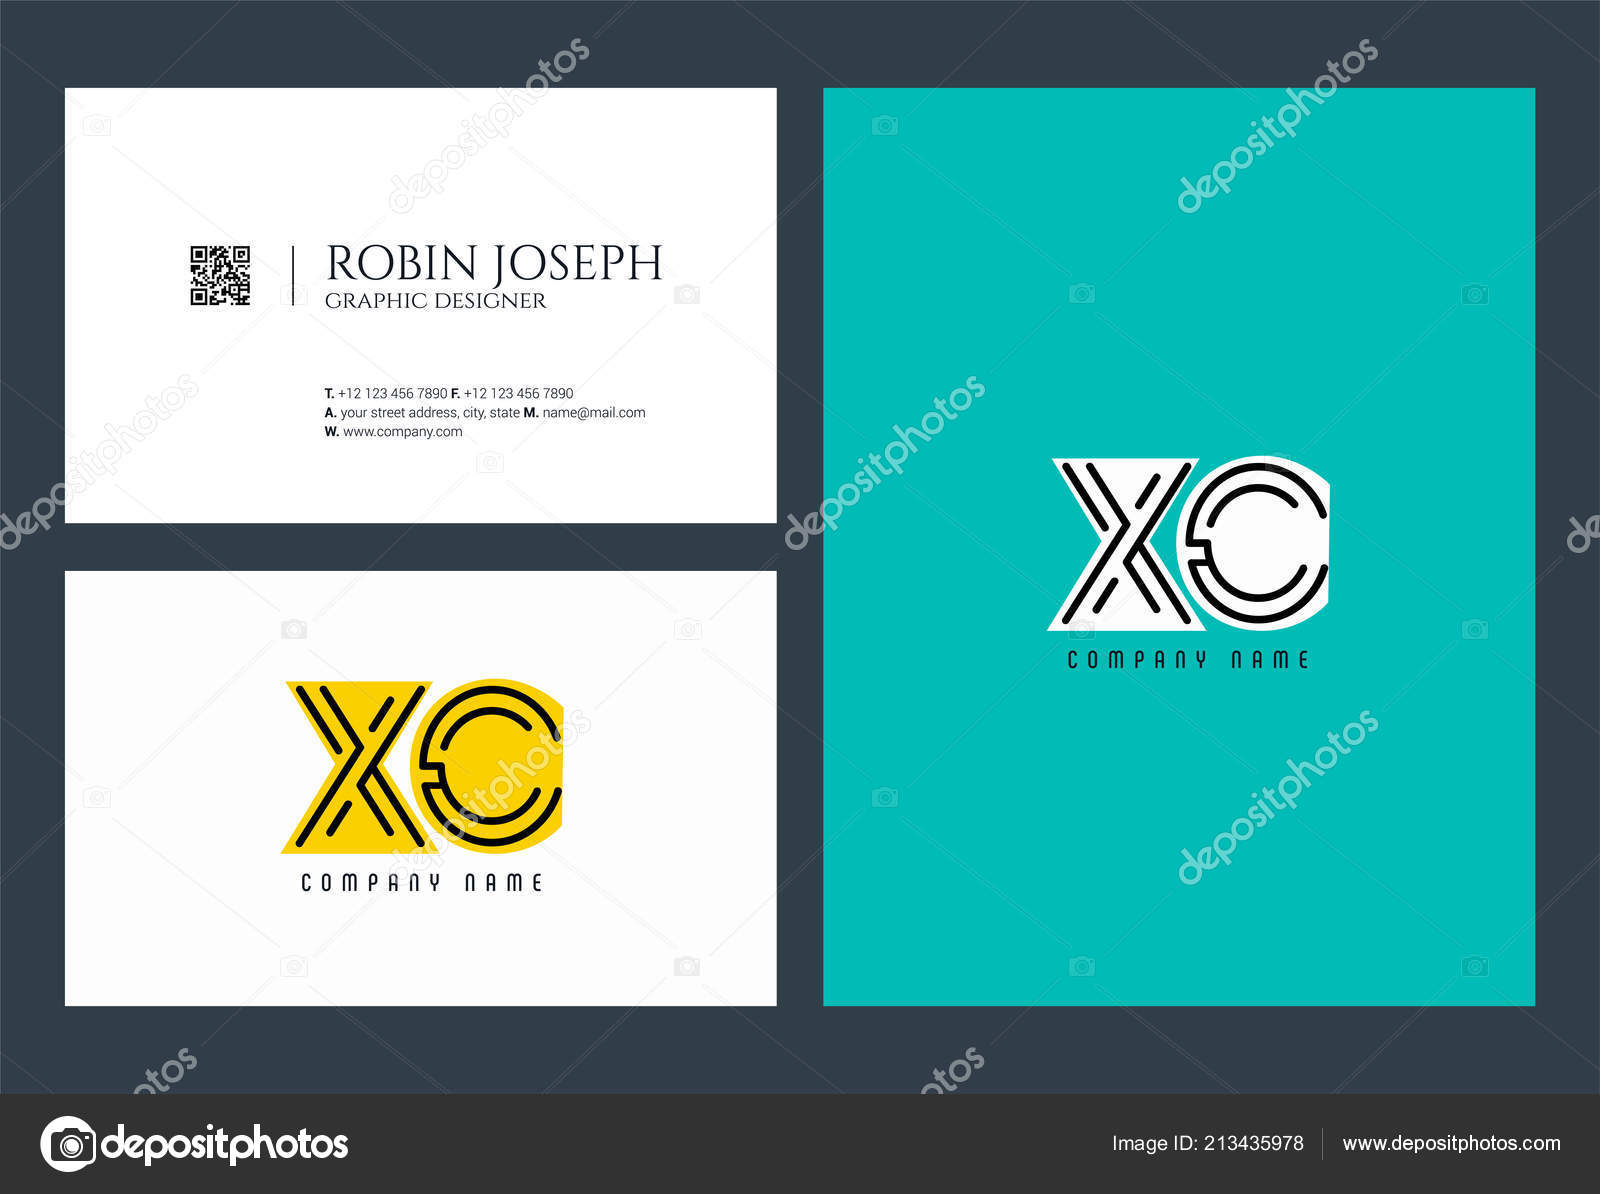 Letters logo template business banner stock vector ajayandzyn letters logo xc template for business banner vector by ajayandzyngmail spiritdancerdesigns Gallery